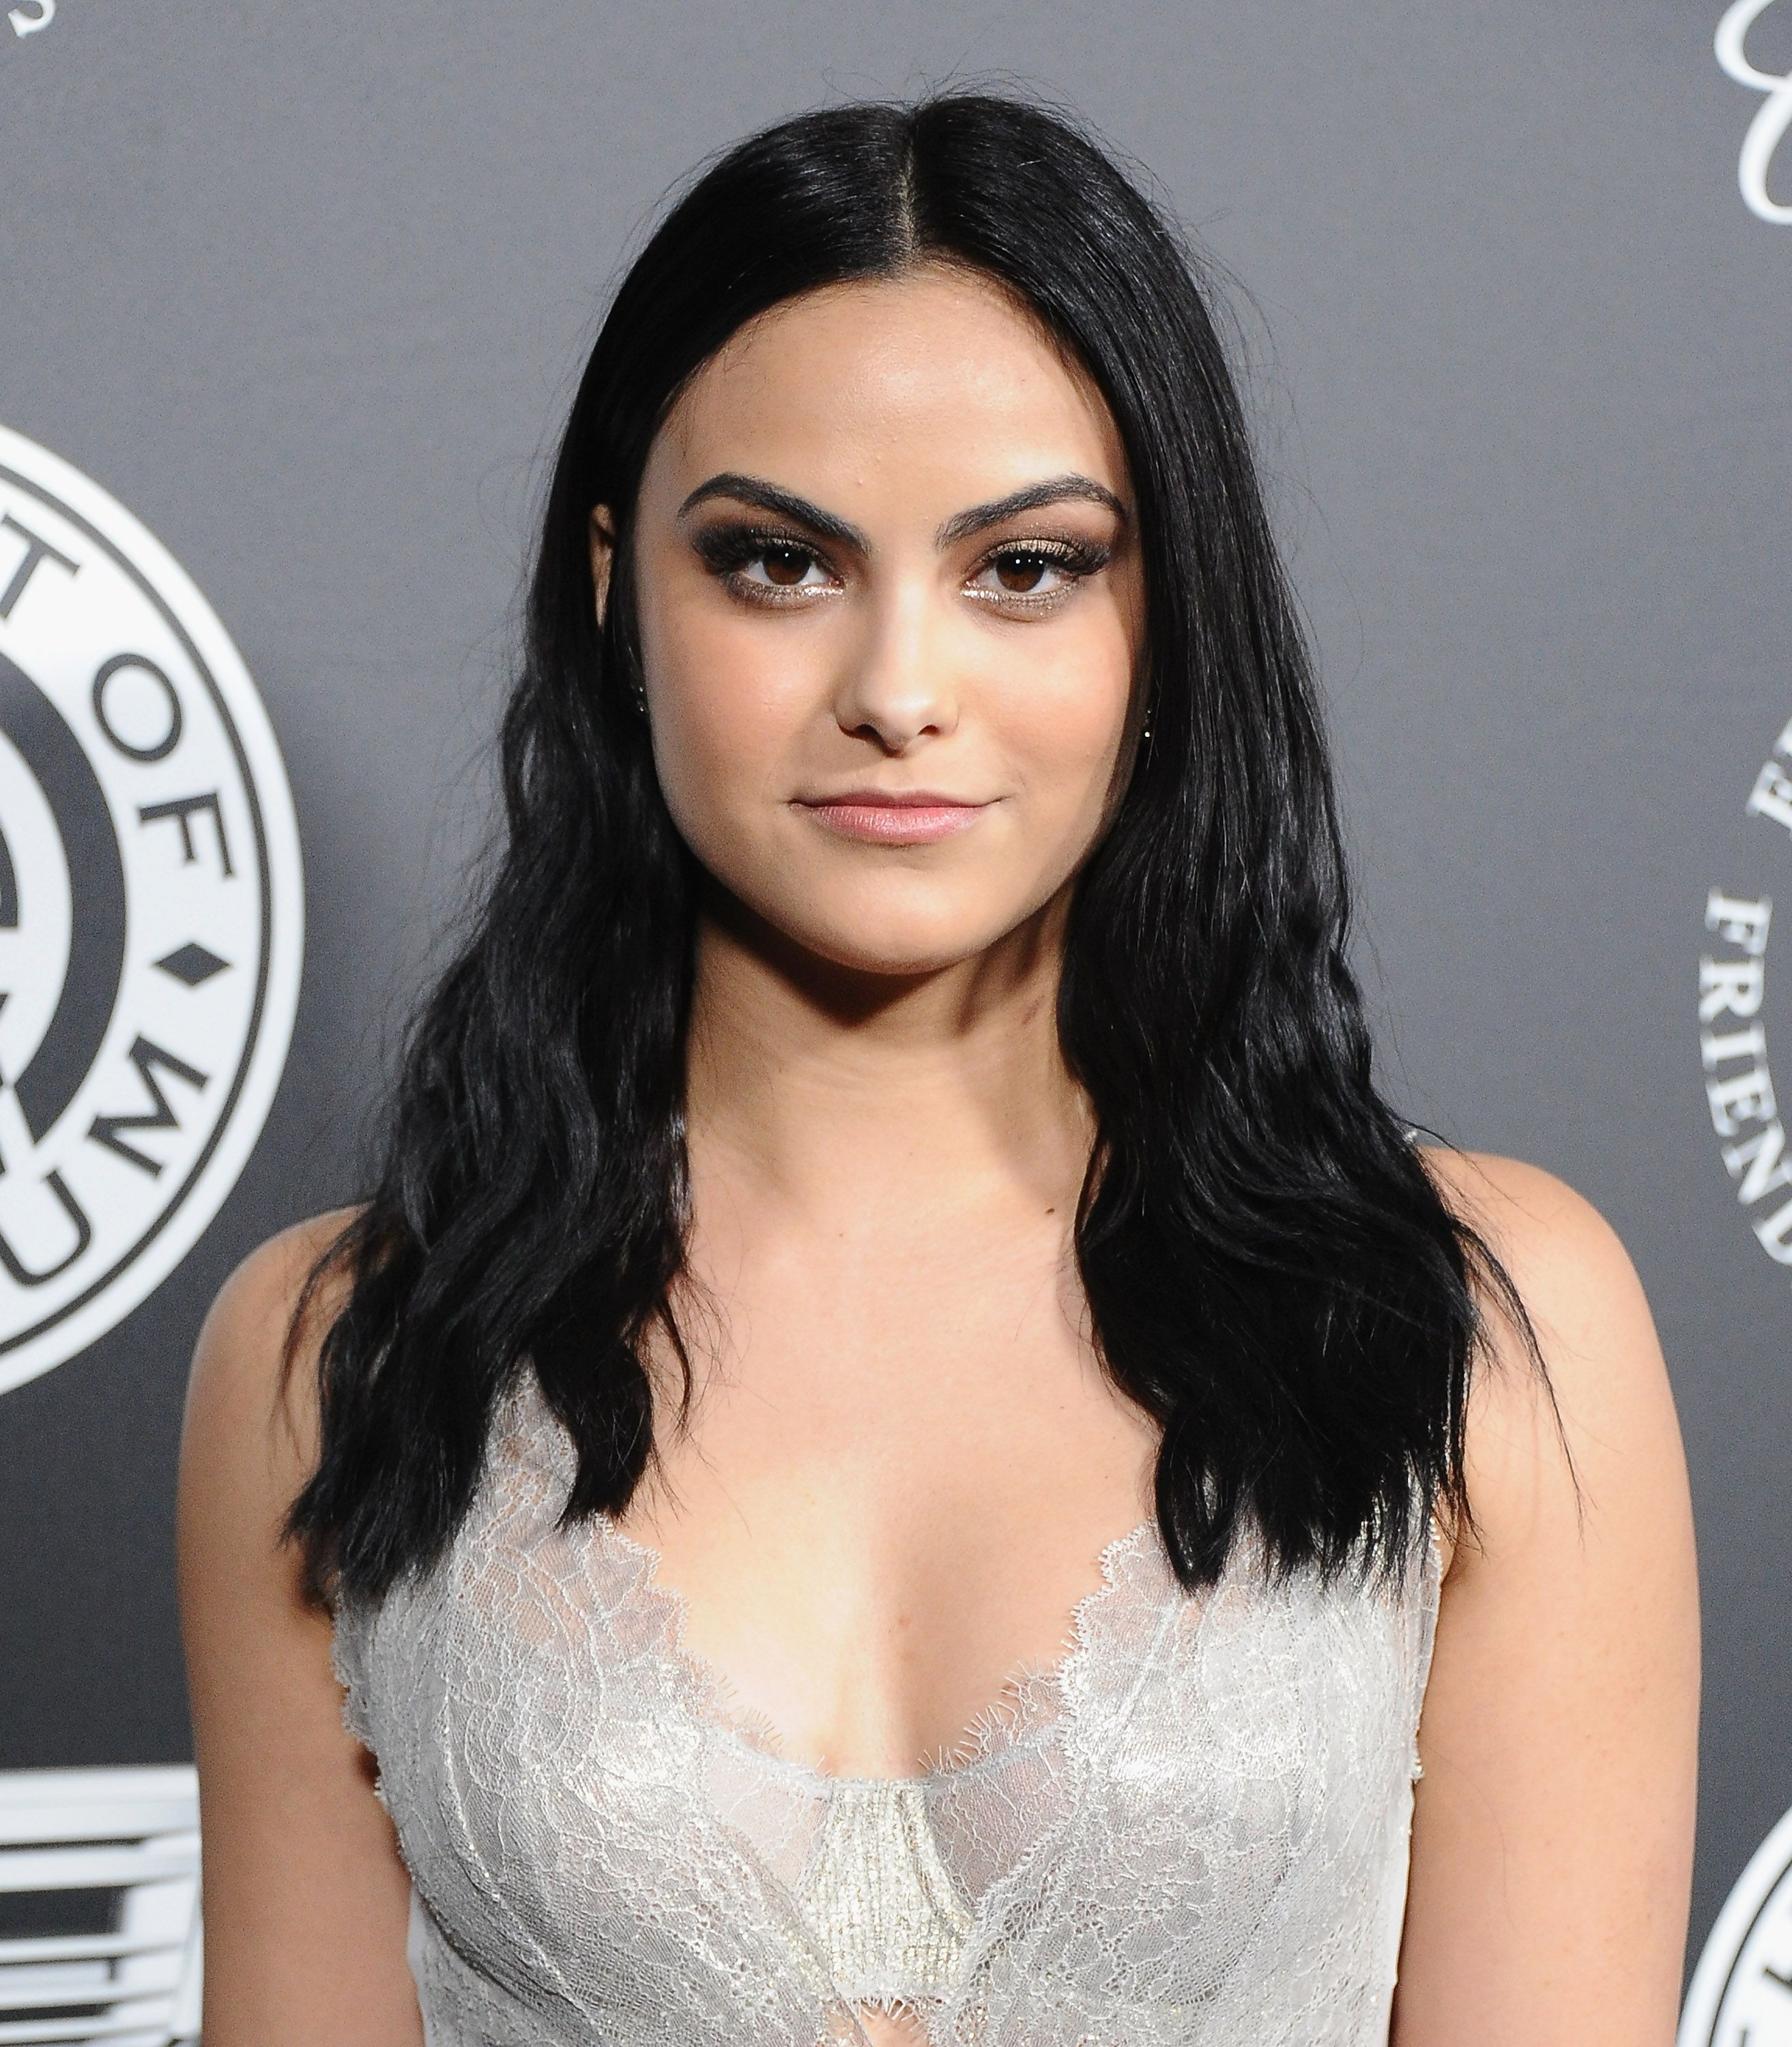 Cleavage Images Camila Mendes naked photo 2017